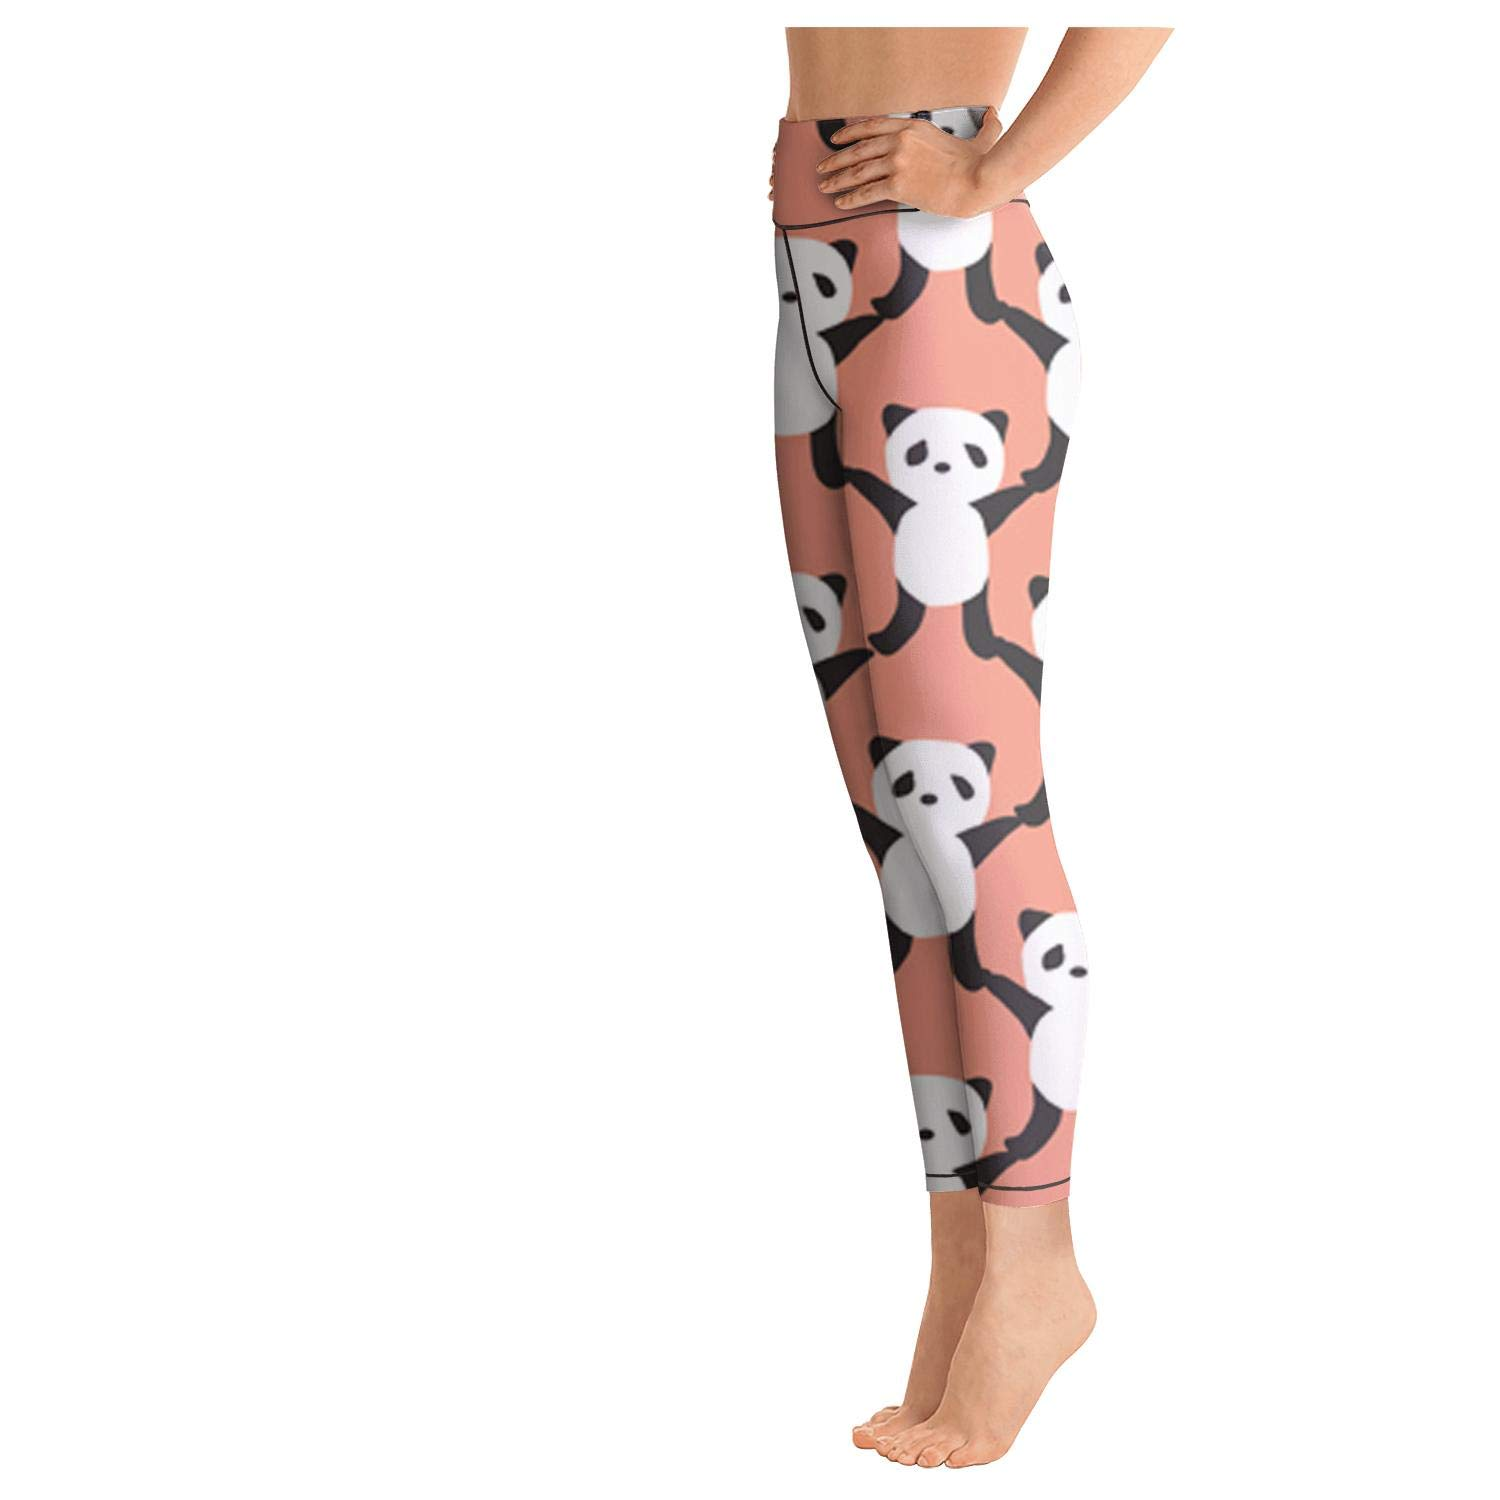 Panda Hand by Hand Workout Running Leggings for Women Tummy Control Sports Yoga Pants with Pockets